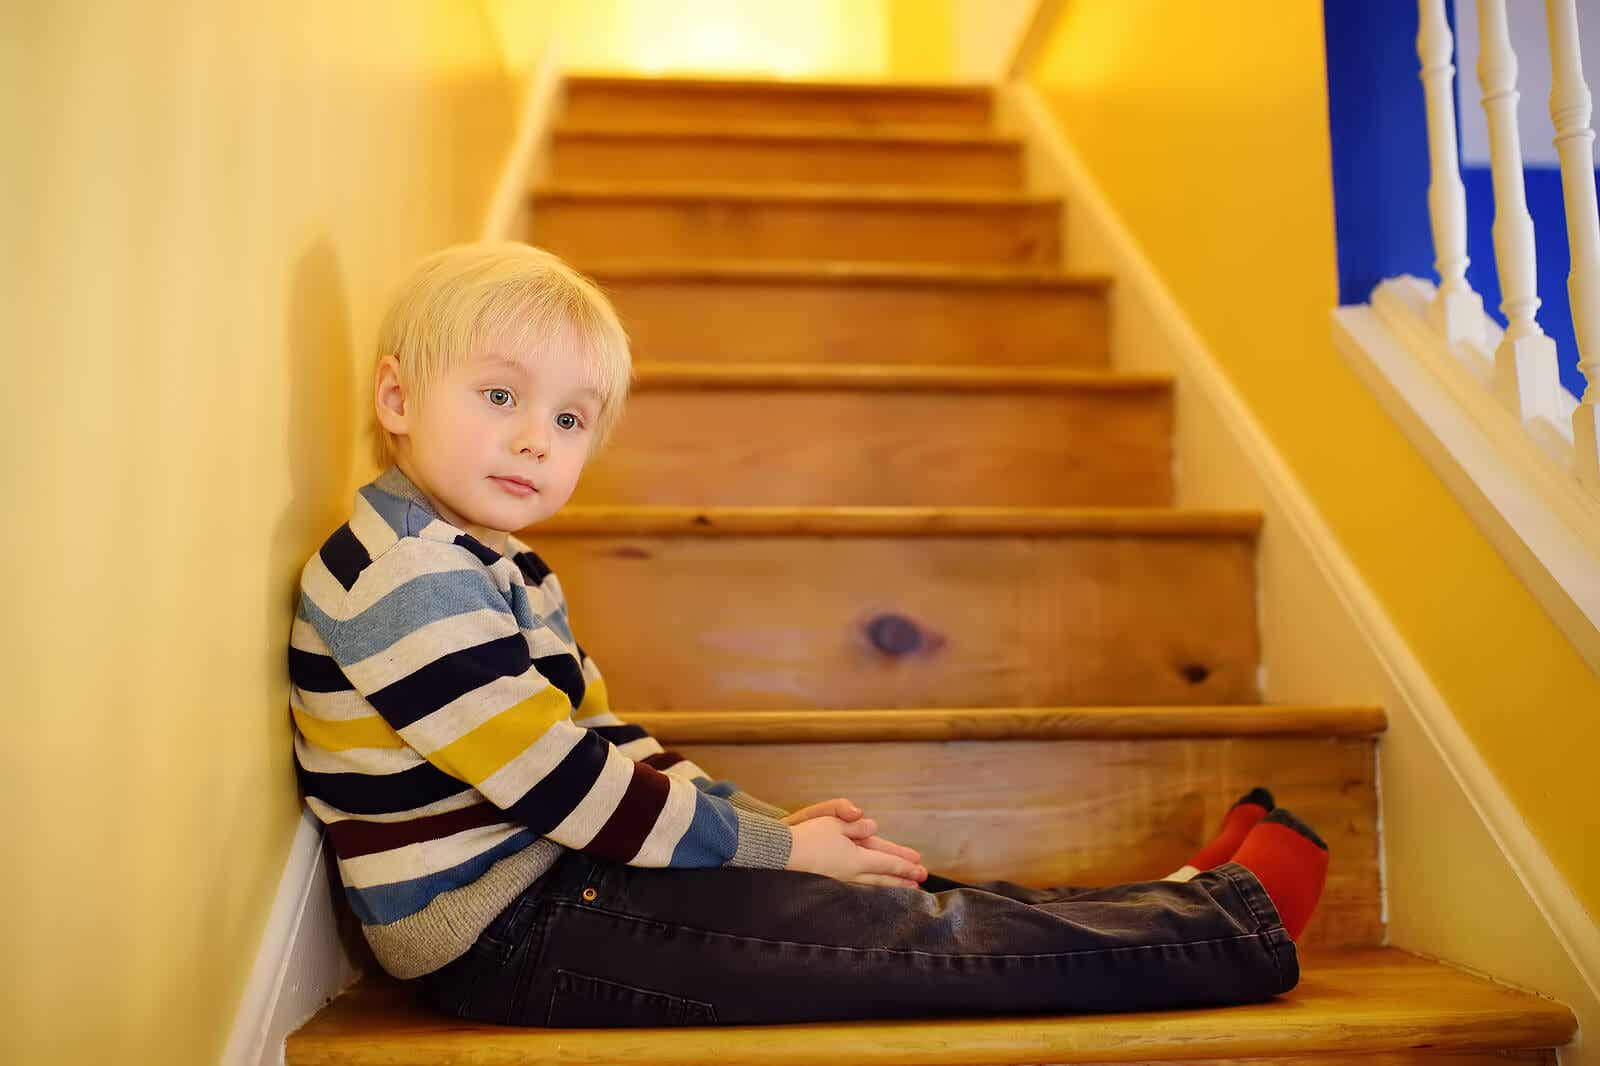 A child sitting on a staircase.